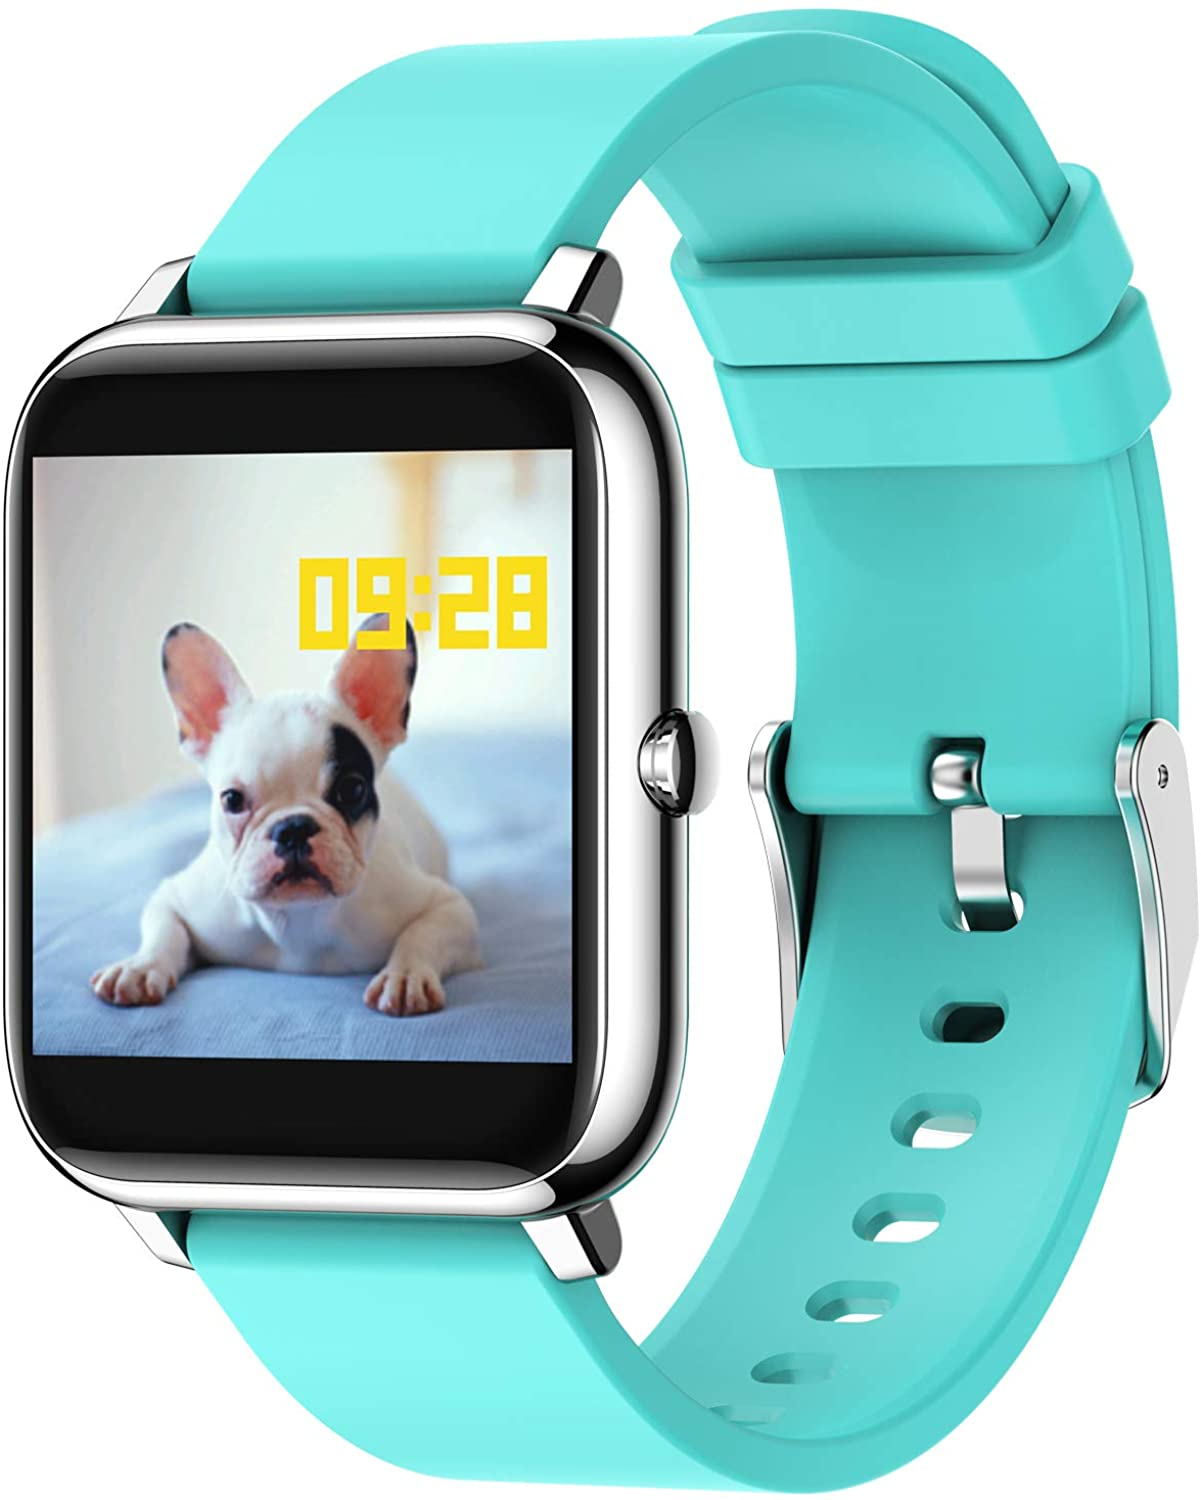 Smart Watch Heart Rate Monitor Sport Modes Music Control Remote Camera Sleep Tracker Calorie Counter for Men Women